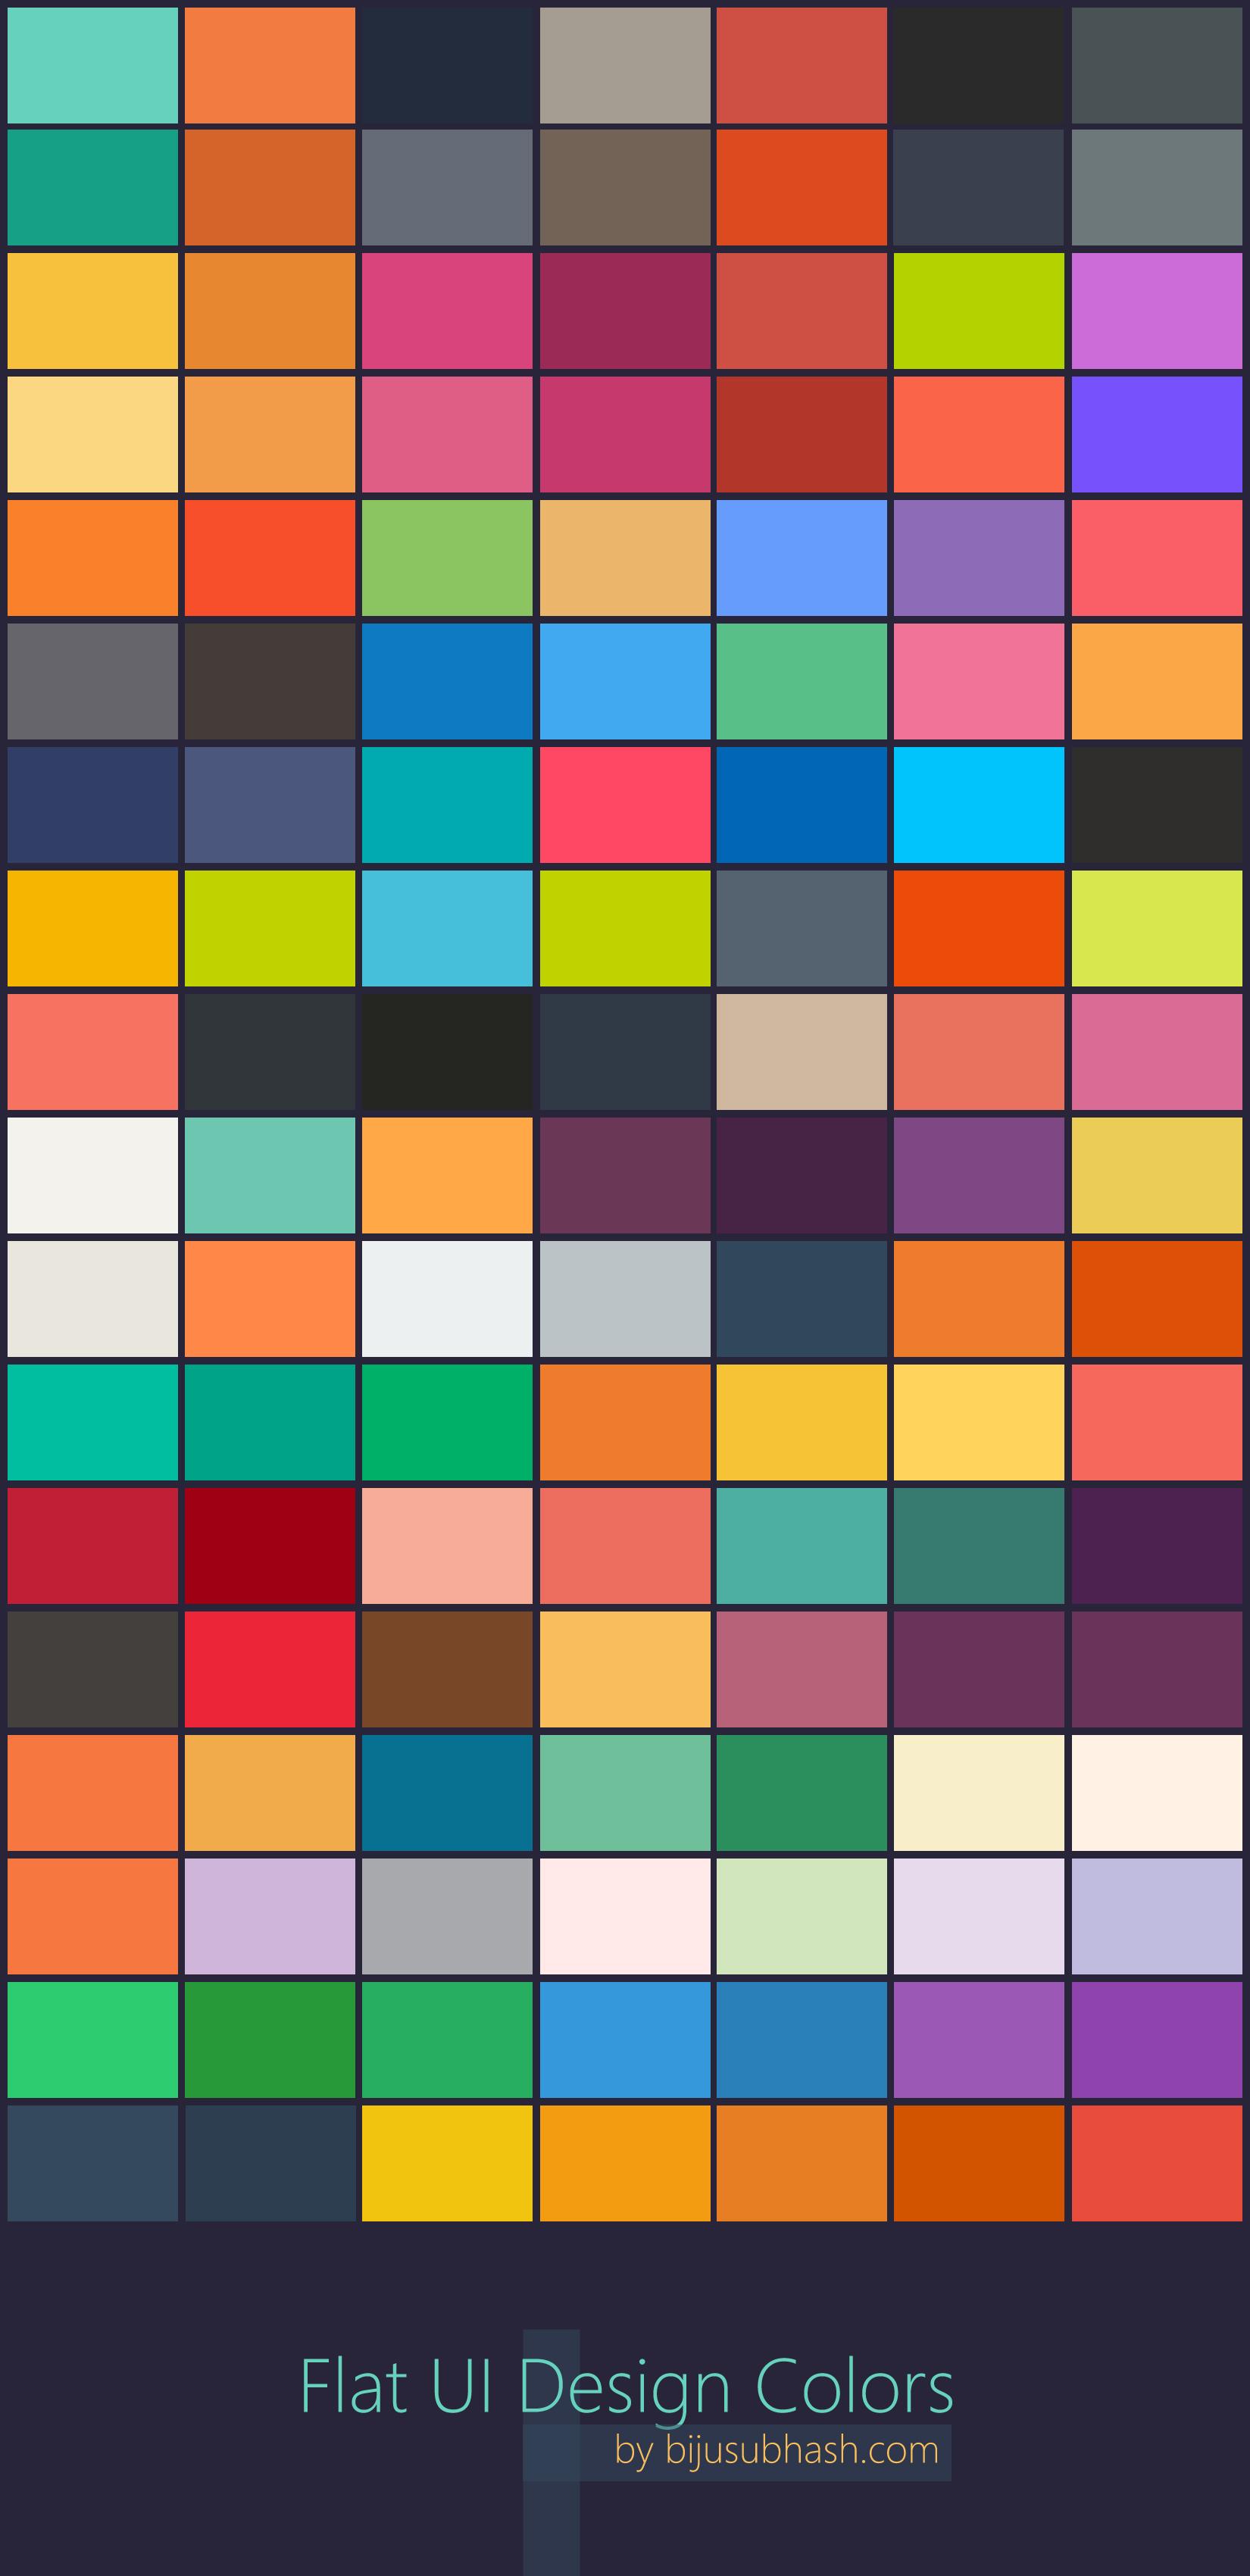 flat_ui_design_colors